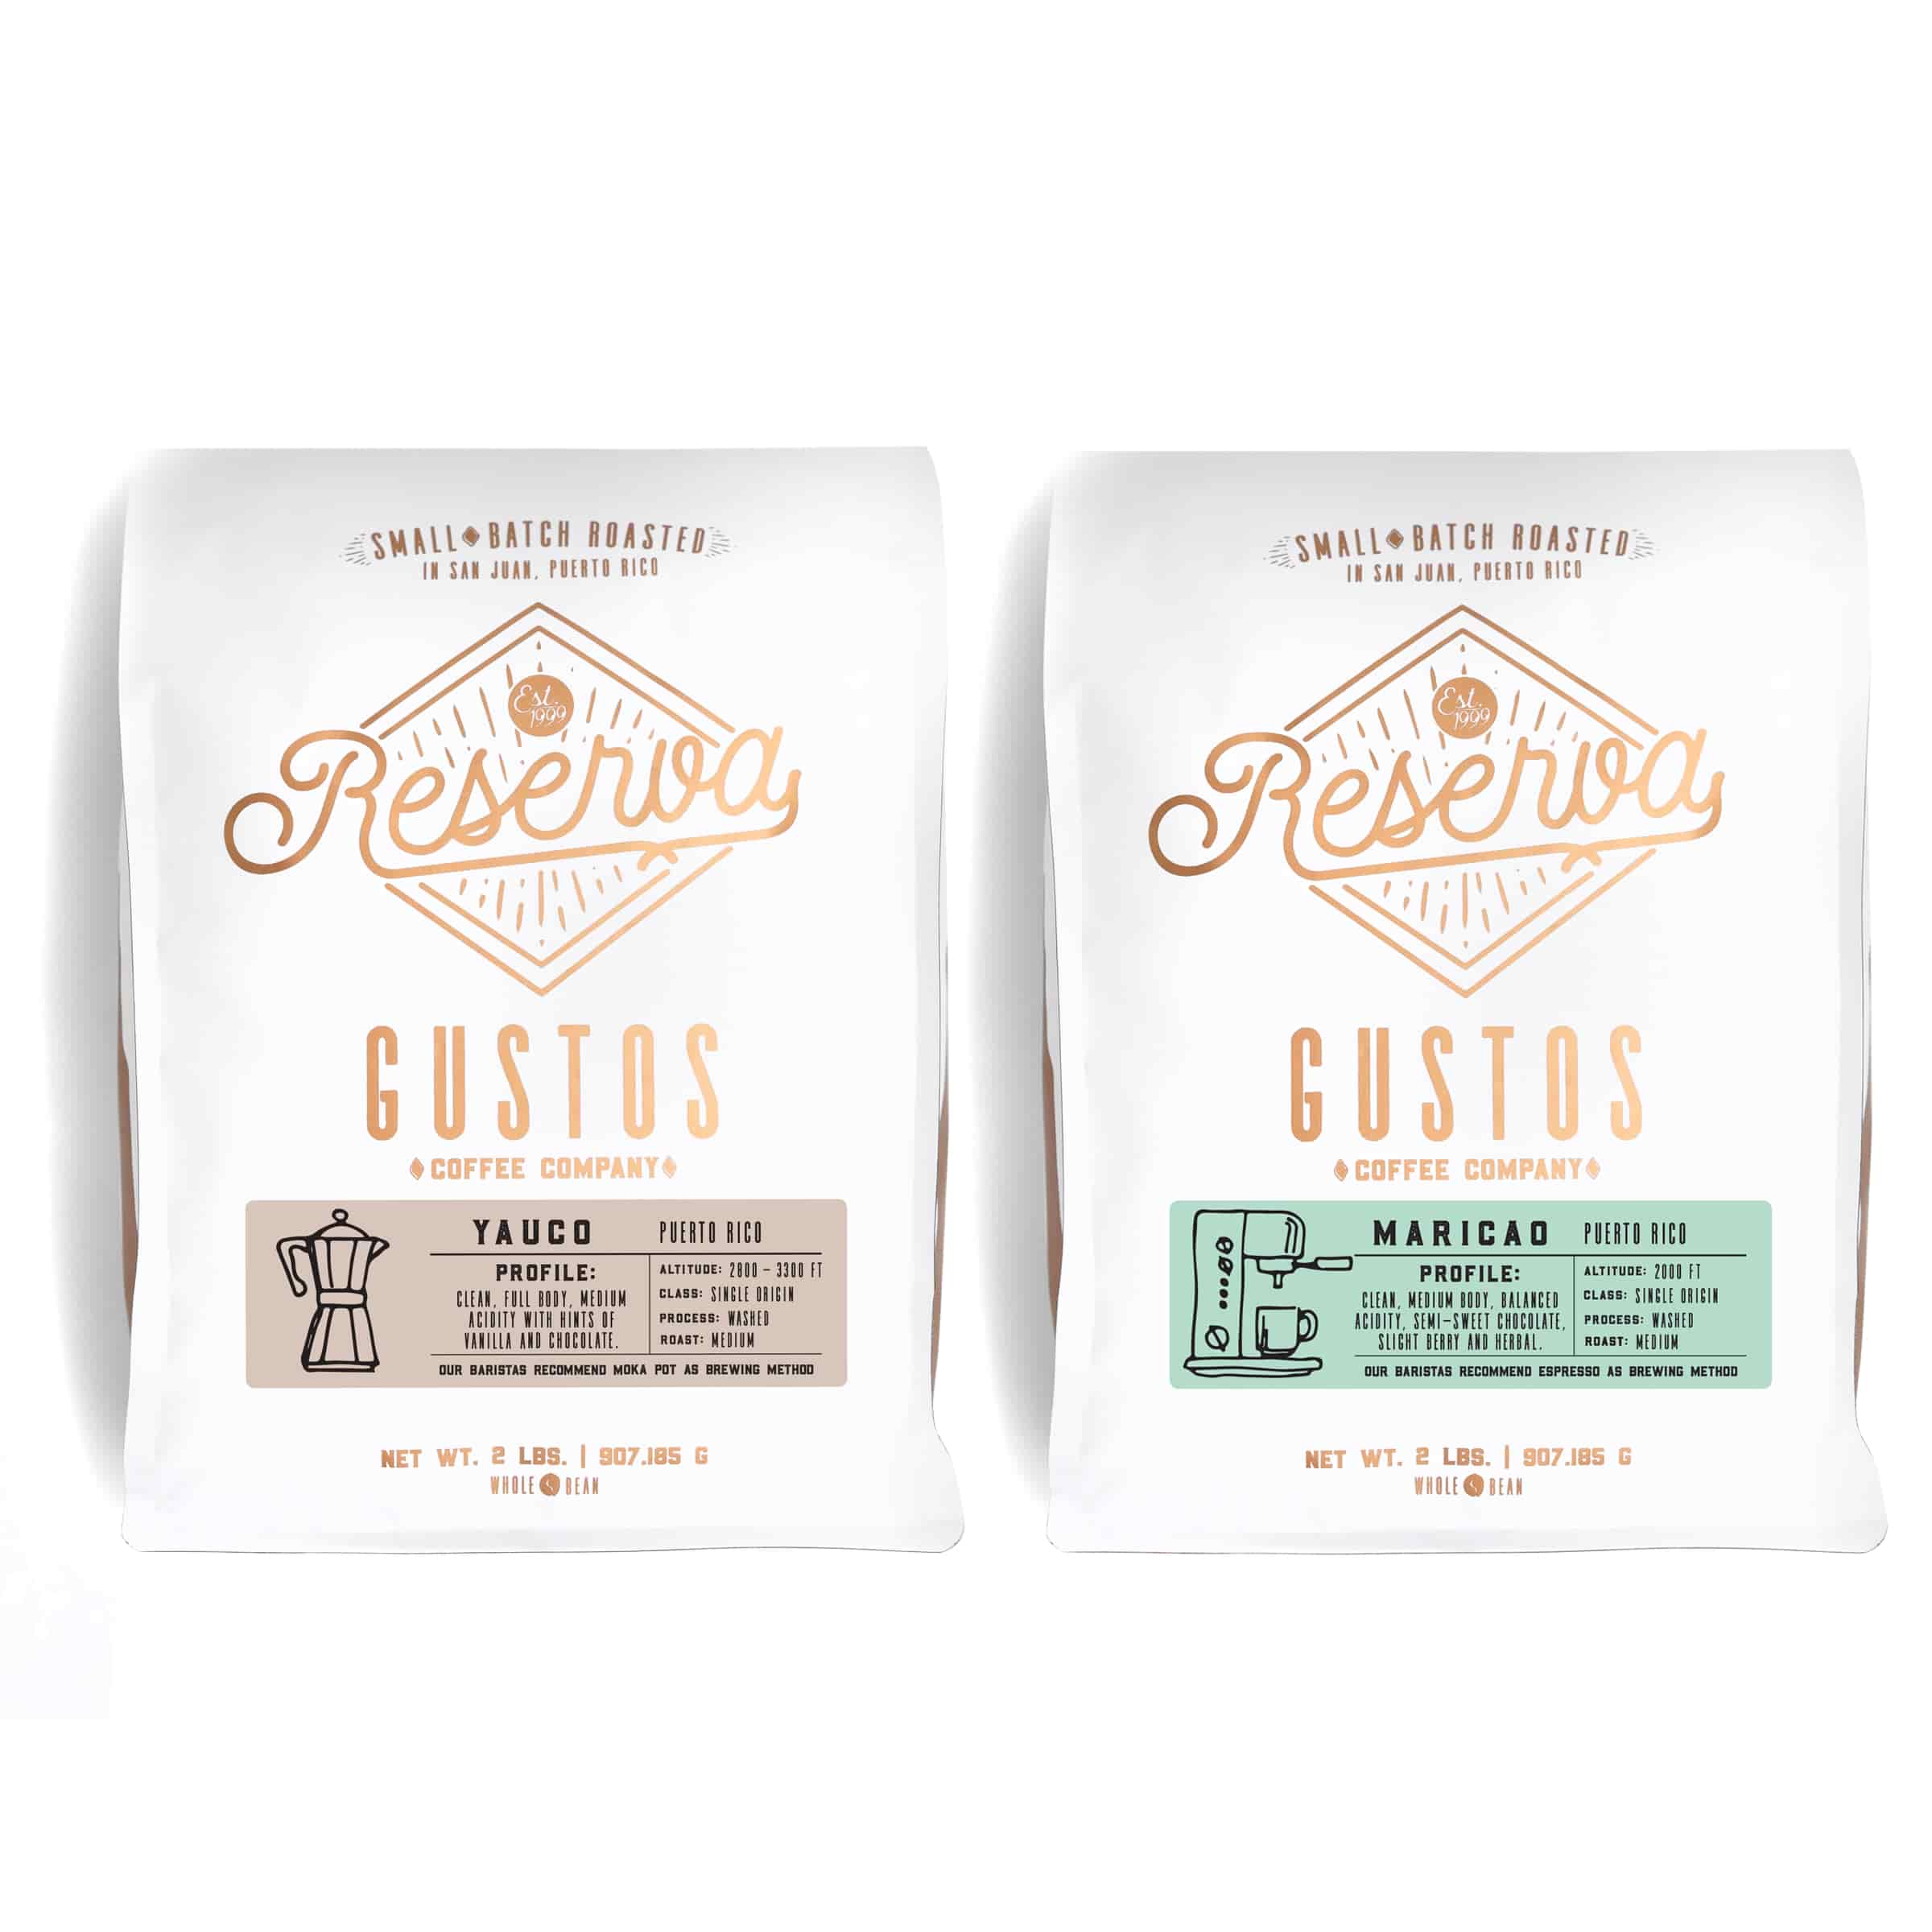 Two 2lb Specialty Coffee bags side by side, from Gustos Coffee Co, Single Origin Yauco, and Maricao PR